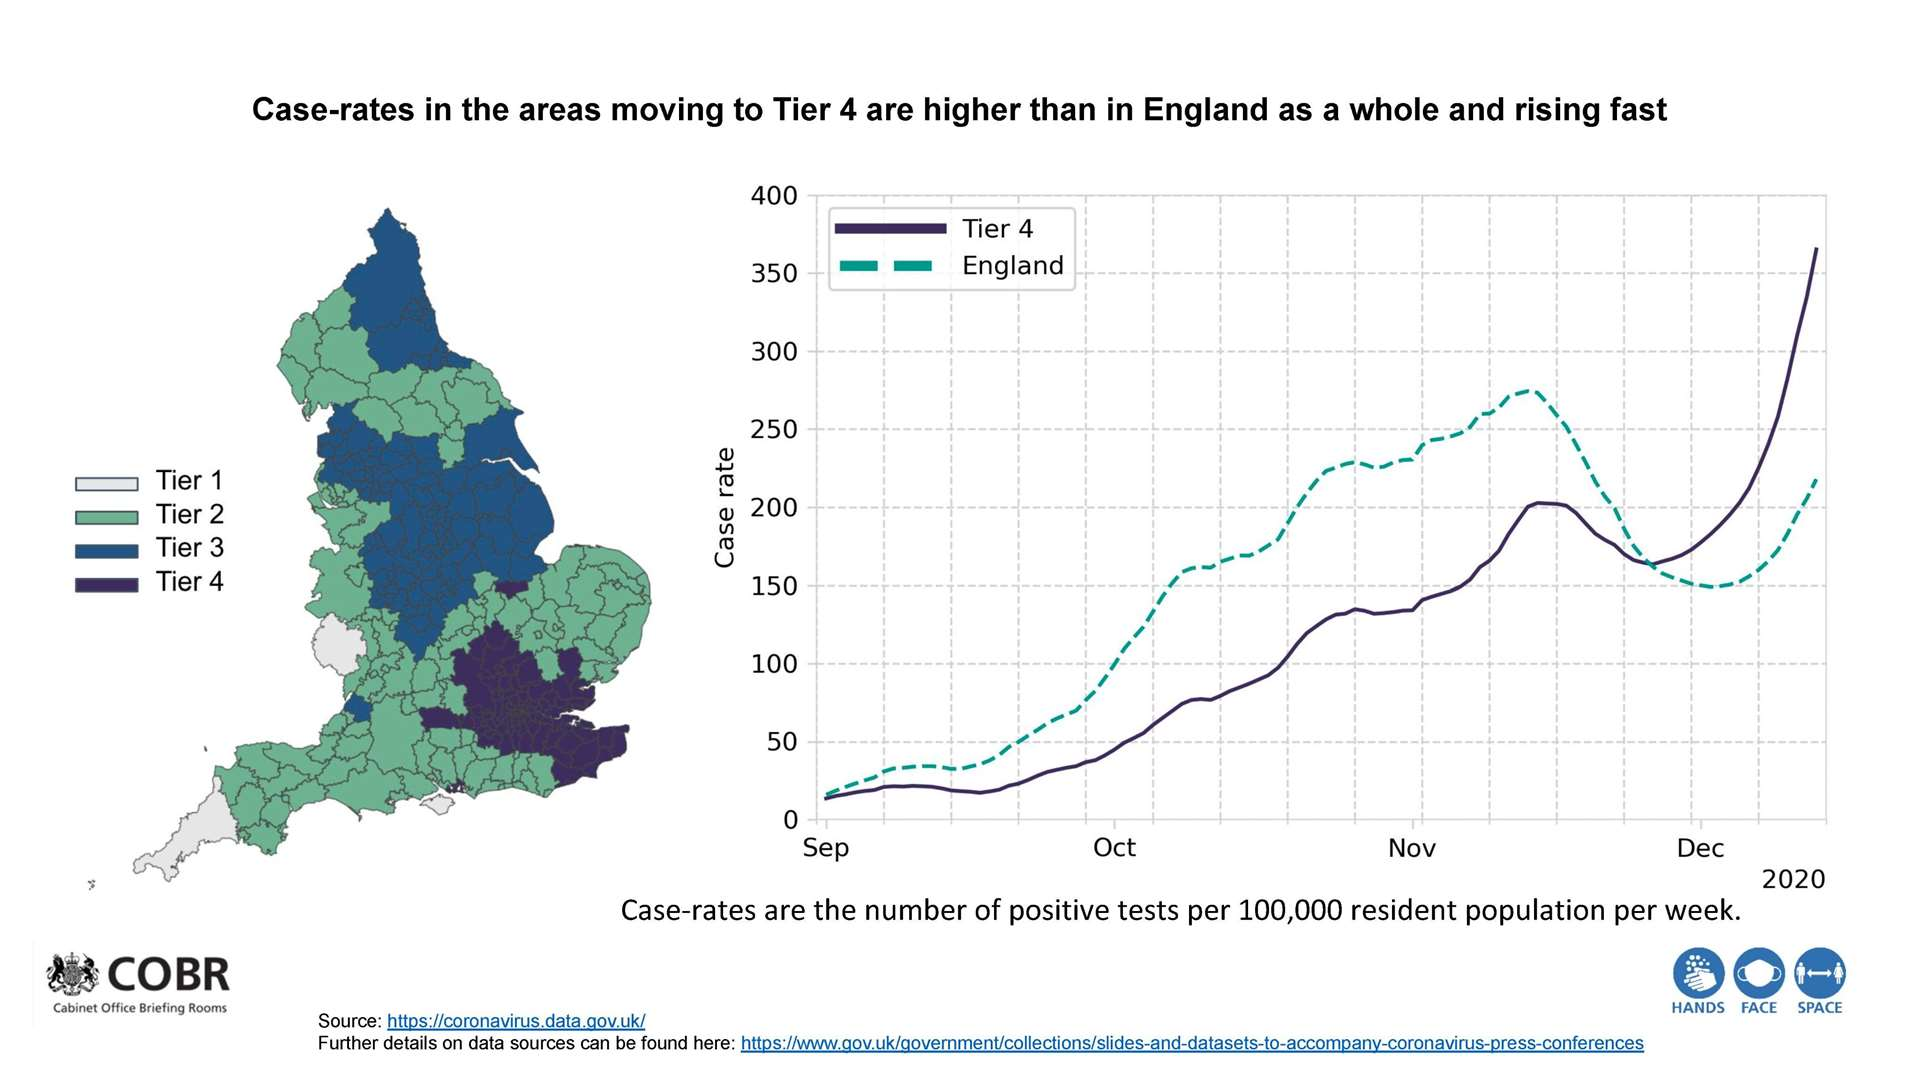 Government graphics show how Covid-19 is spreading faster in Tier 4 areas